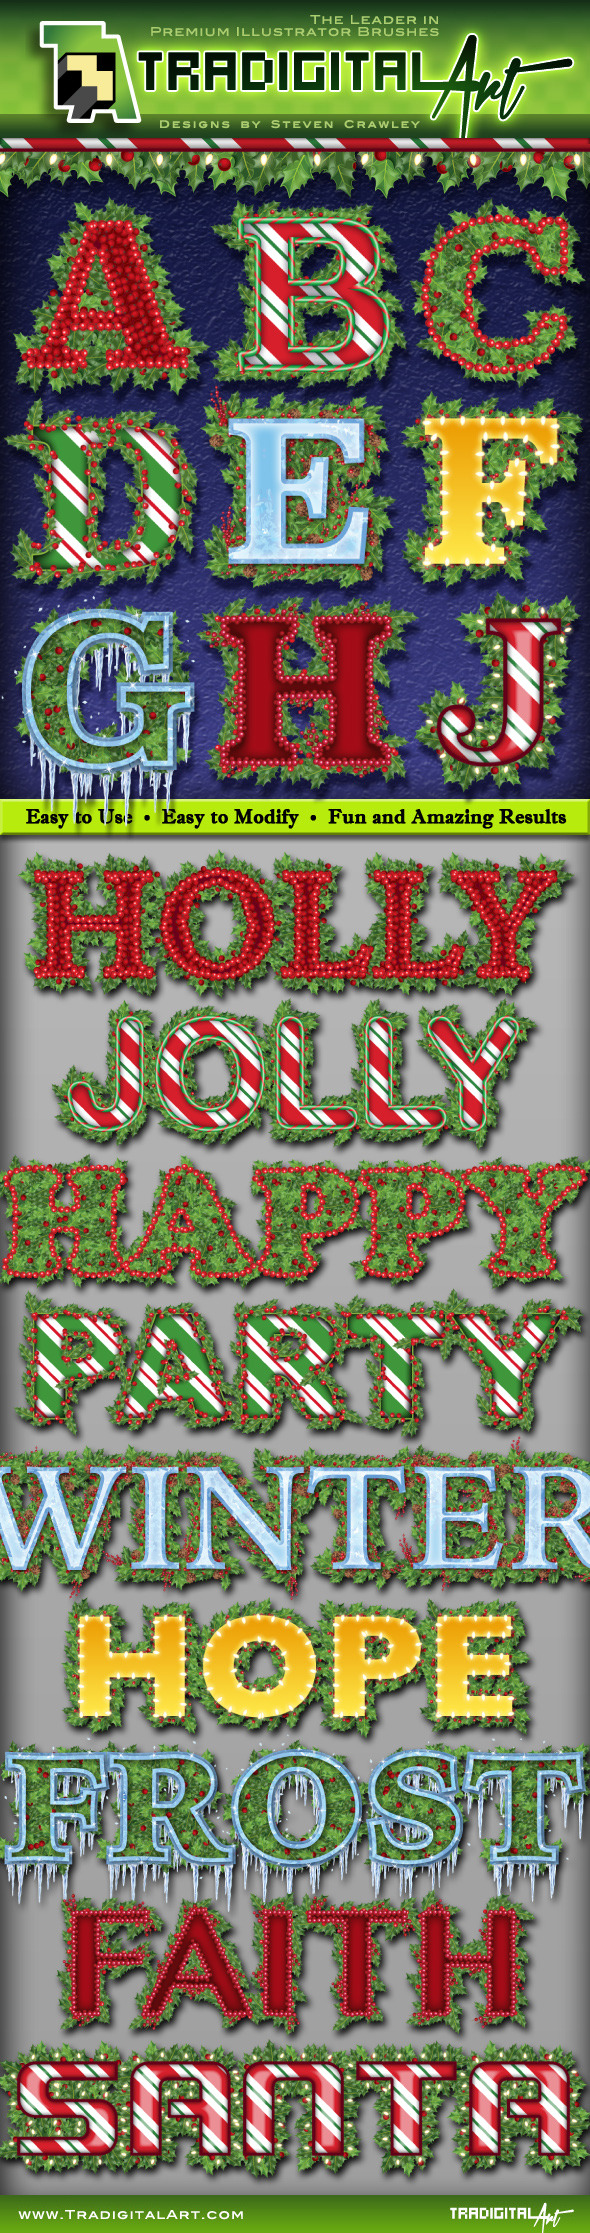 Holly Jolly Graphic Styles - Styles Illustrator